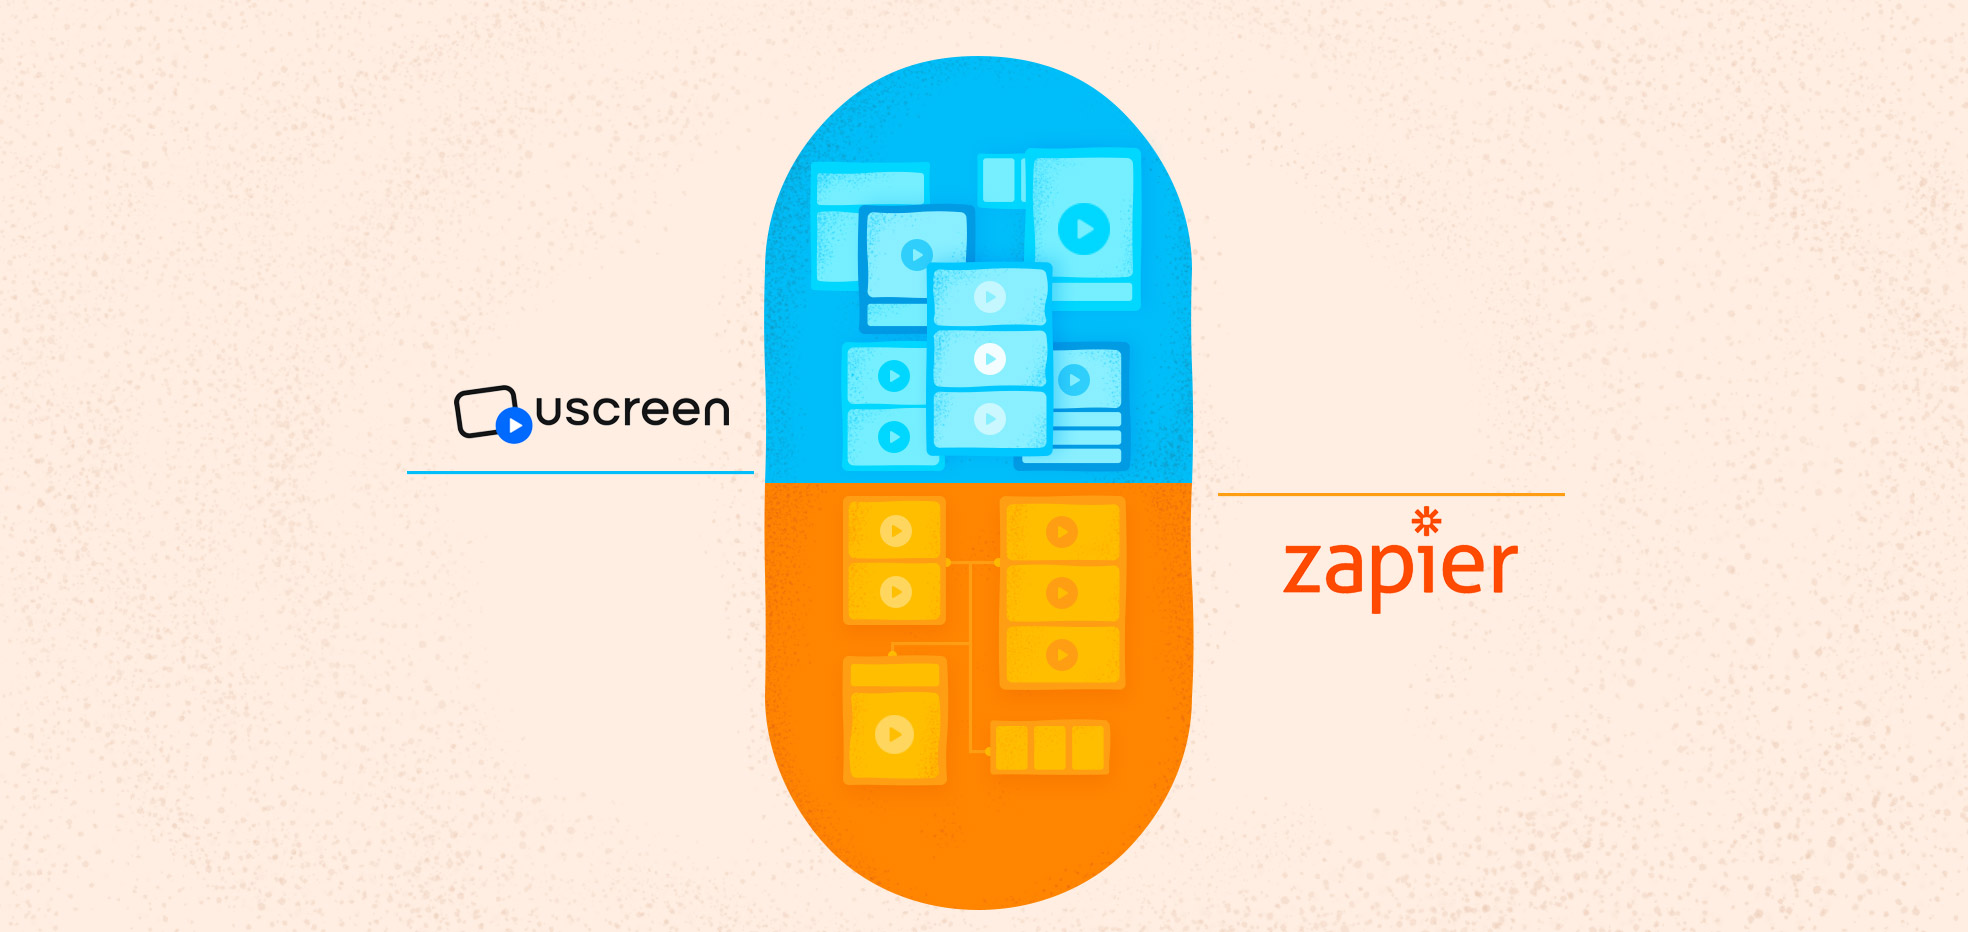 Uscreen Zapier Integration Announcement